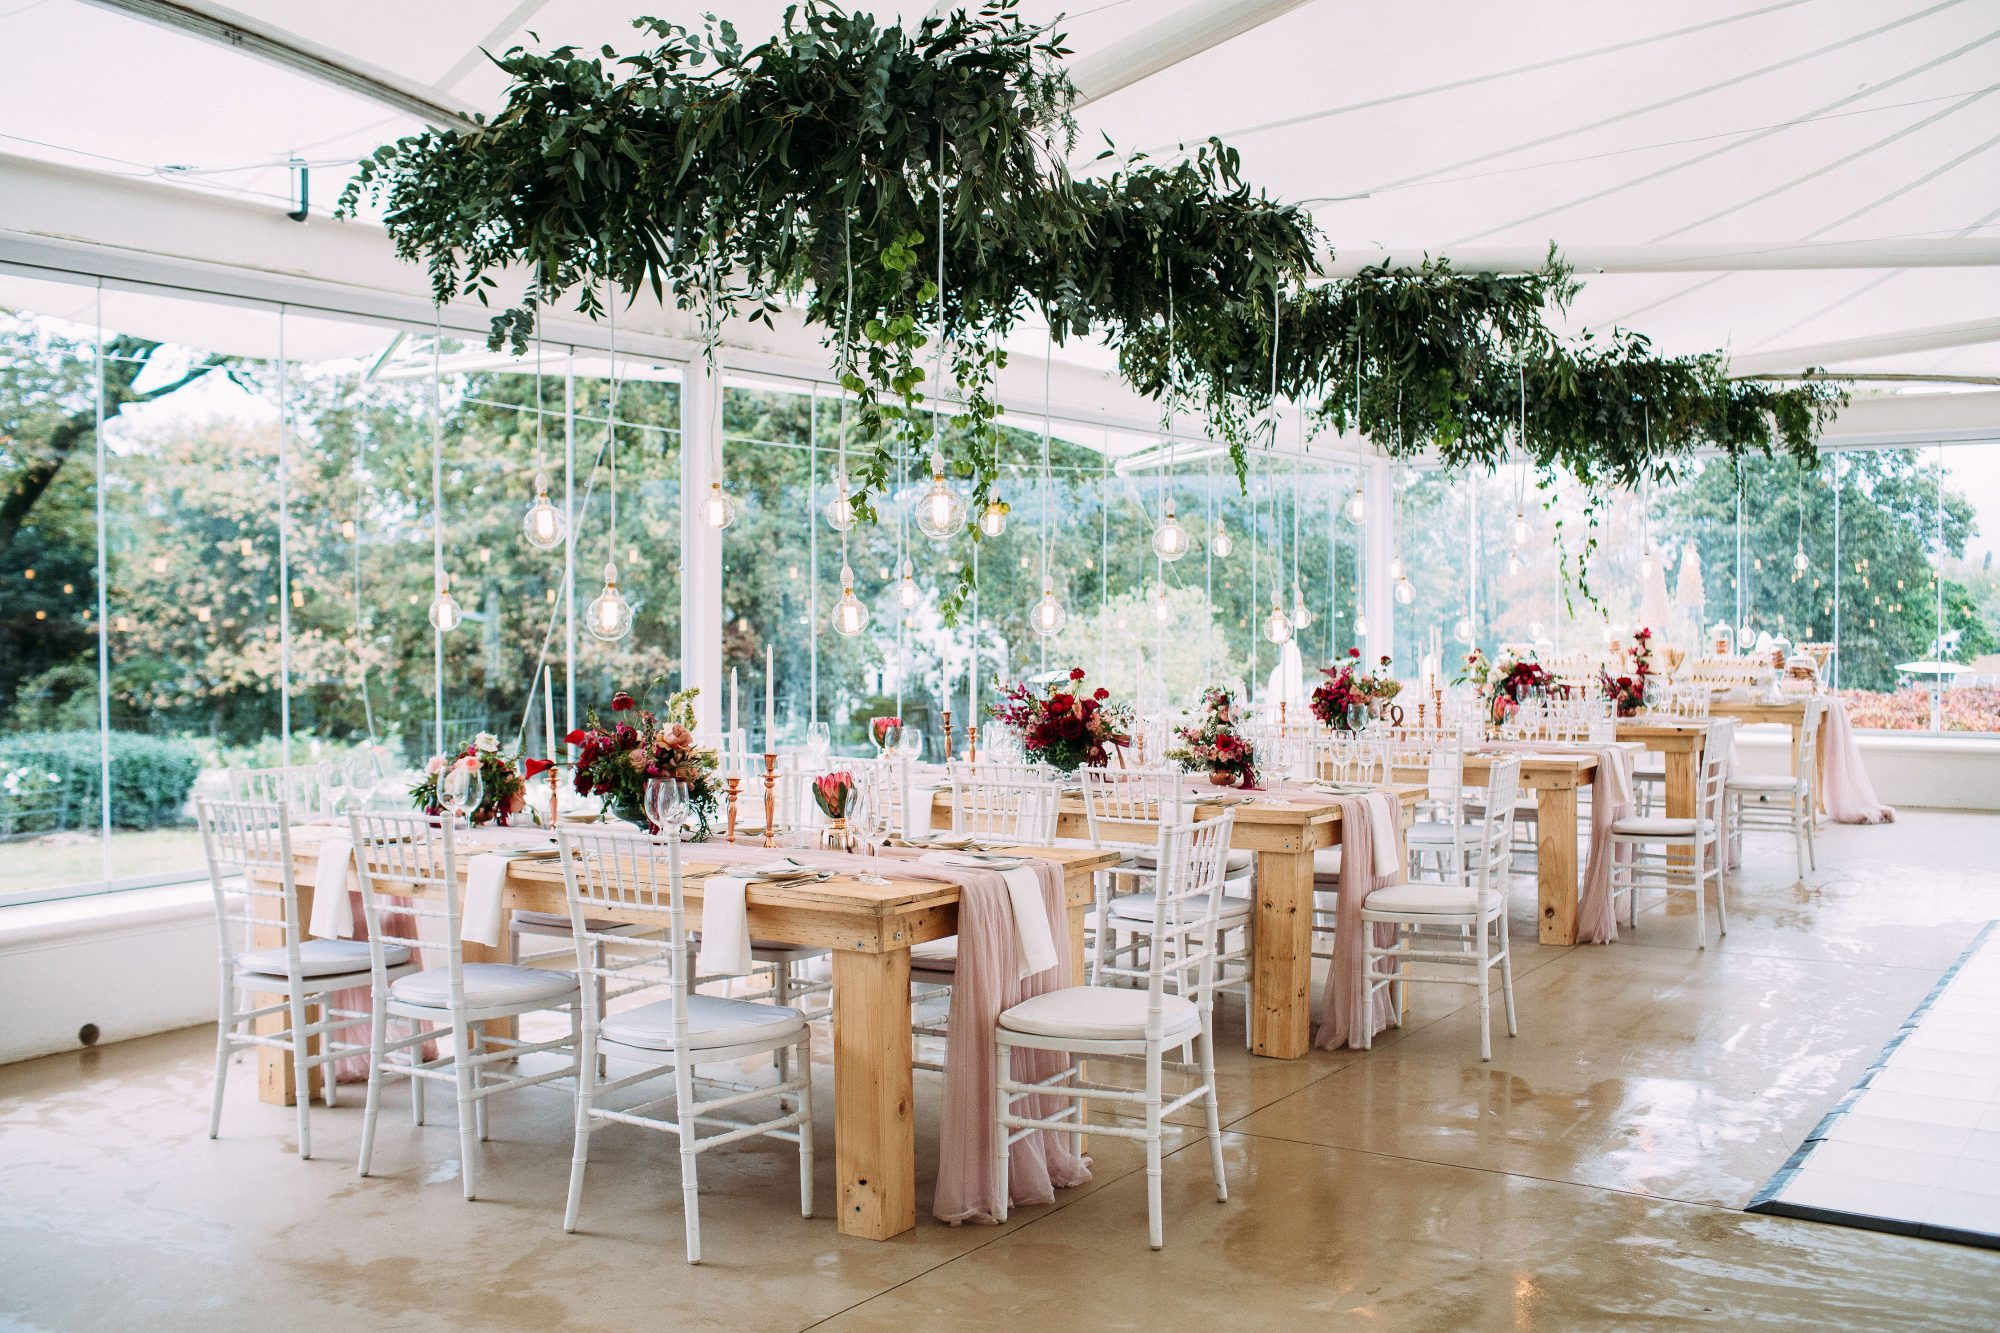 yolana douglas wedding reception space and tables